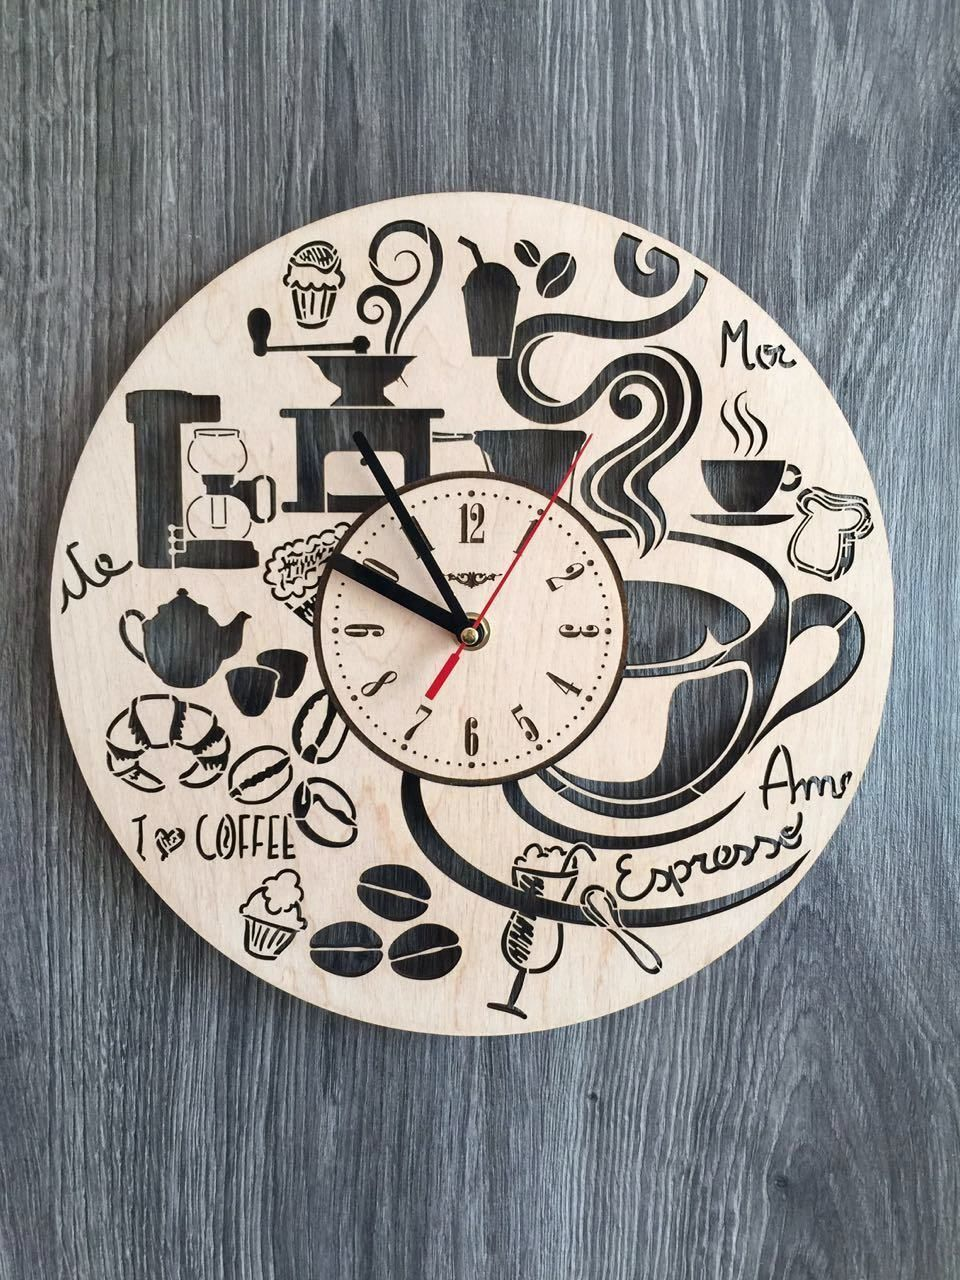 Coffee Shop Cafe Wall Wood Clock 31 99 Size 12 In 30 Cm Really Cool Gift And Unique Home Decoration Can Be Personali Clock Wall Decor Wood Clocks Clock